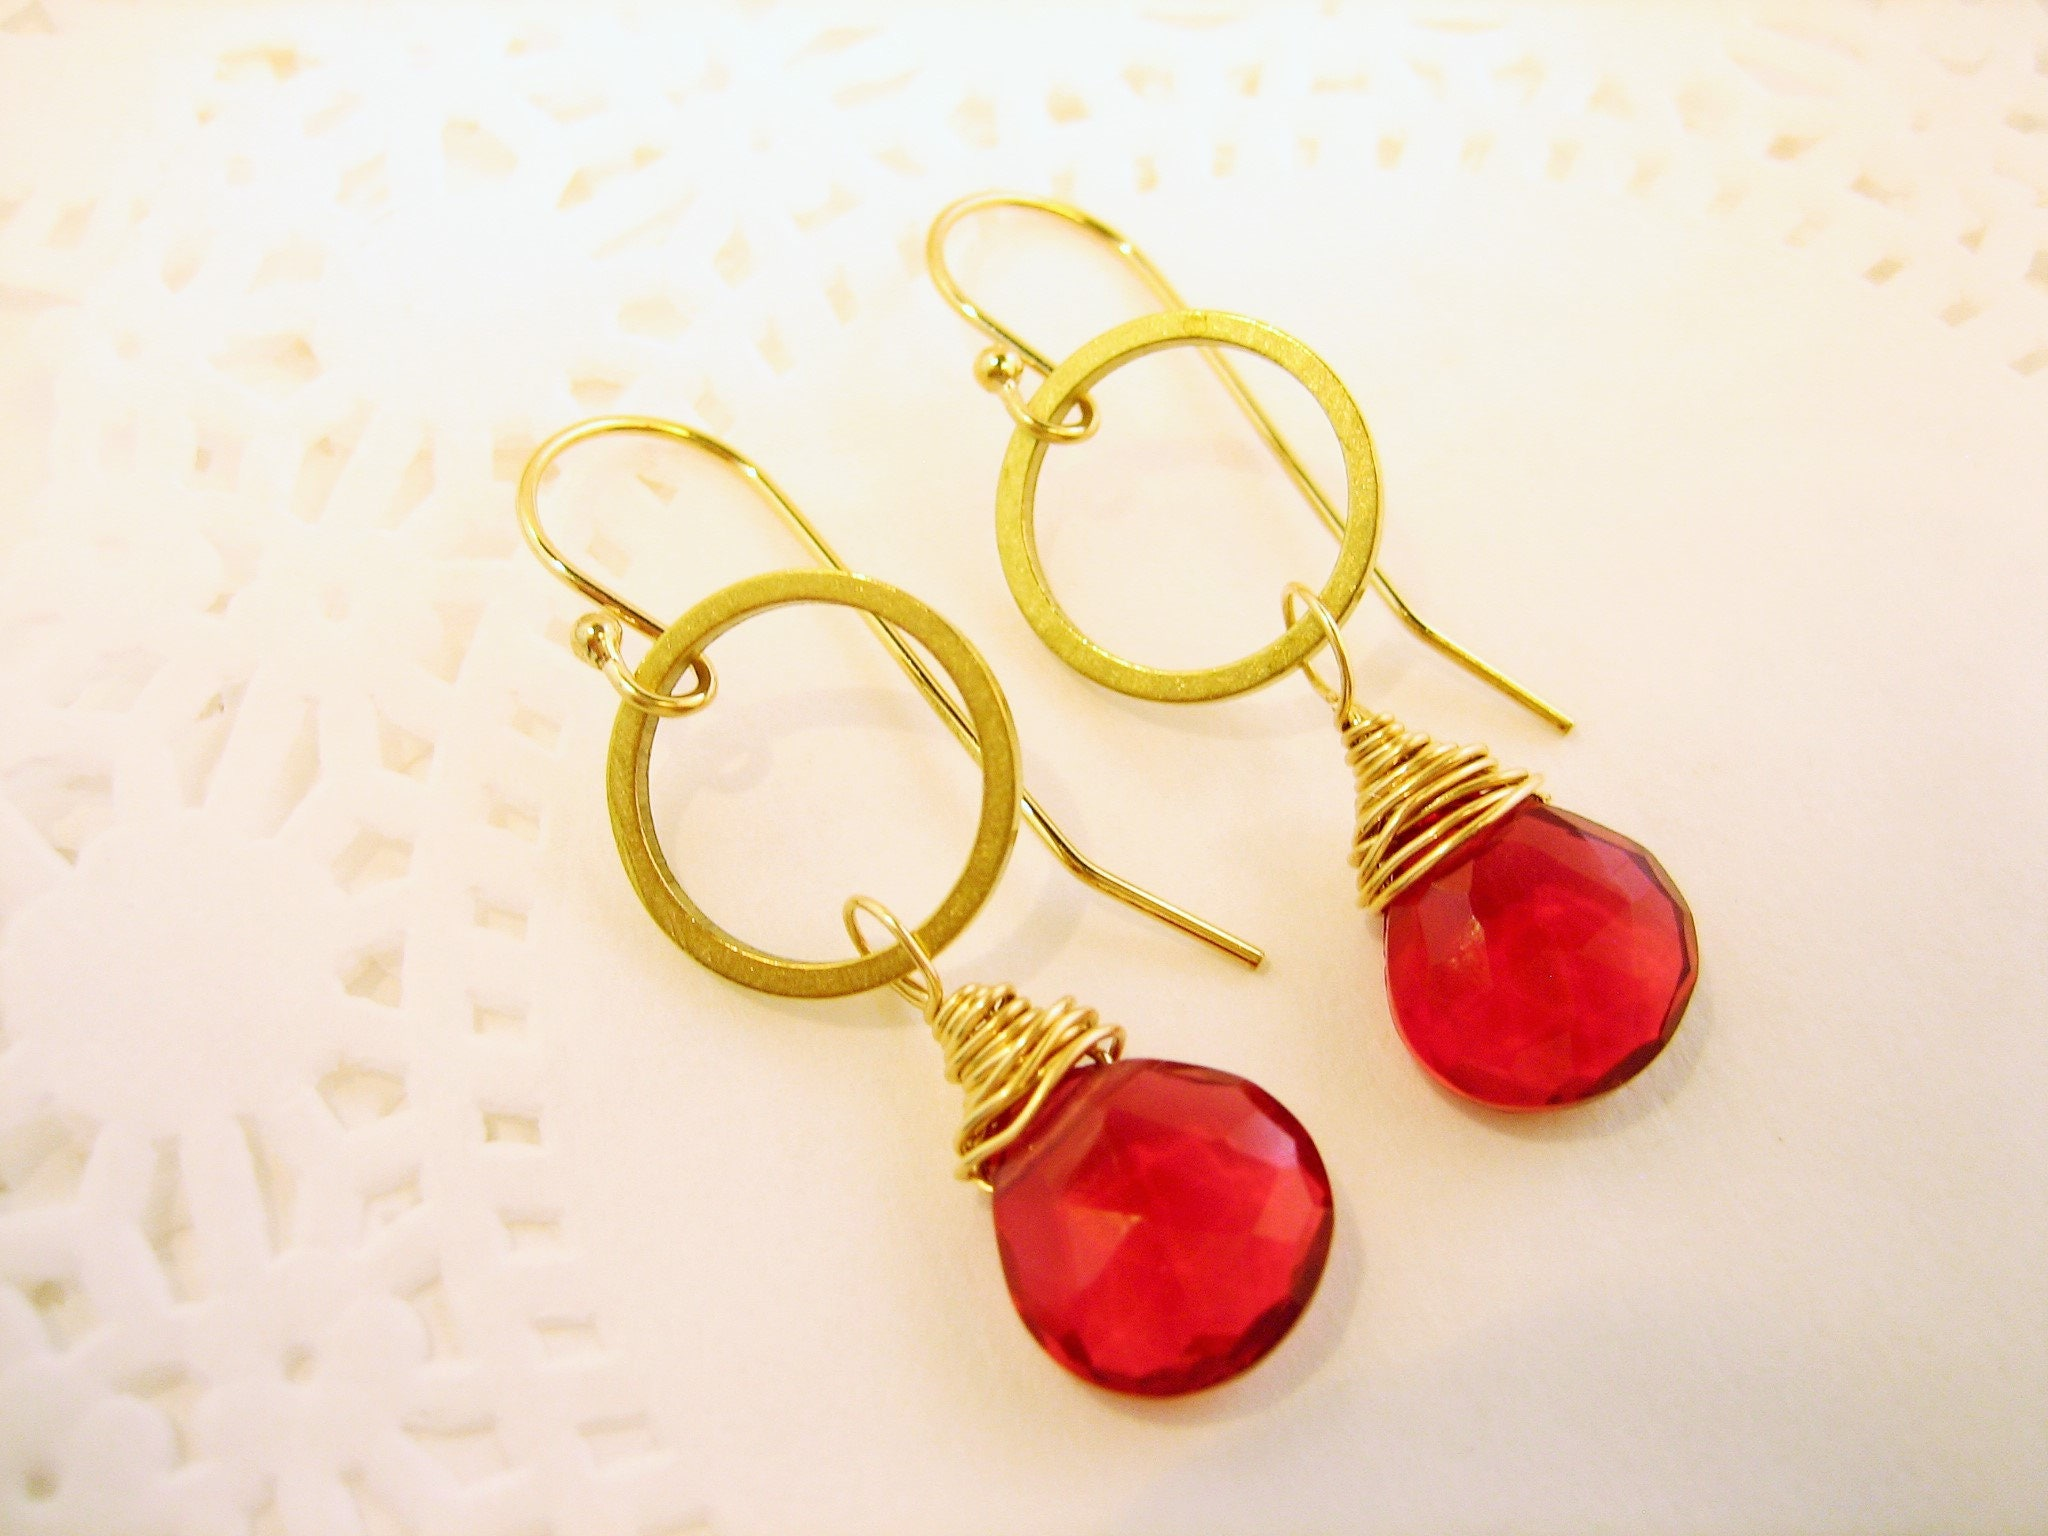 Hammered gold and red quartz drop earrings, red gemstone earrings, misty metal, gift for her, bridesmaid earrings